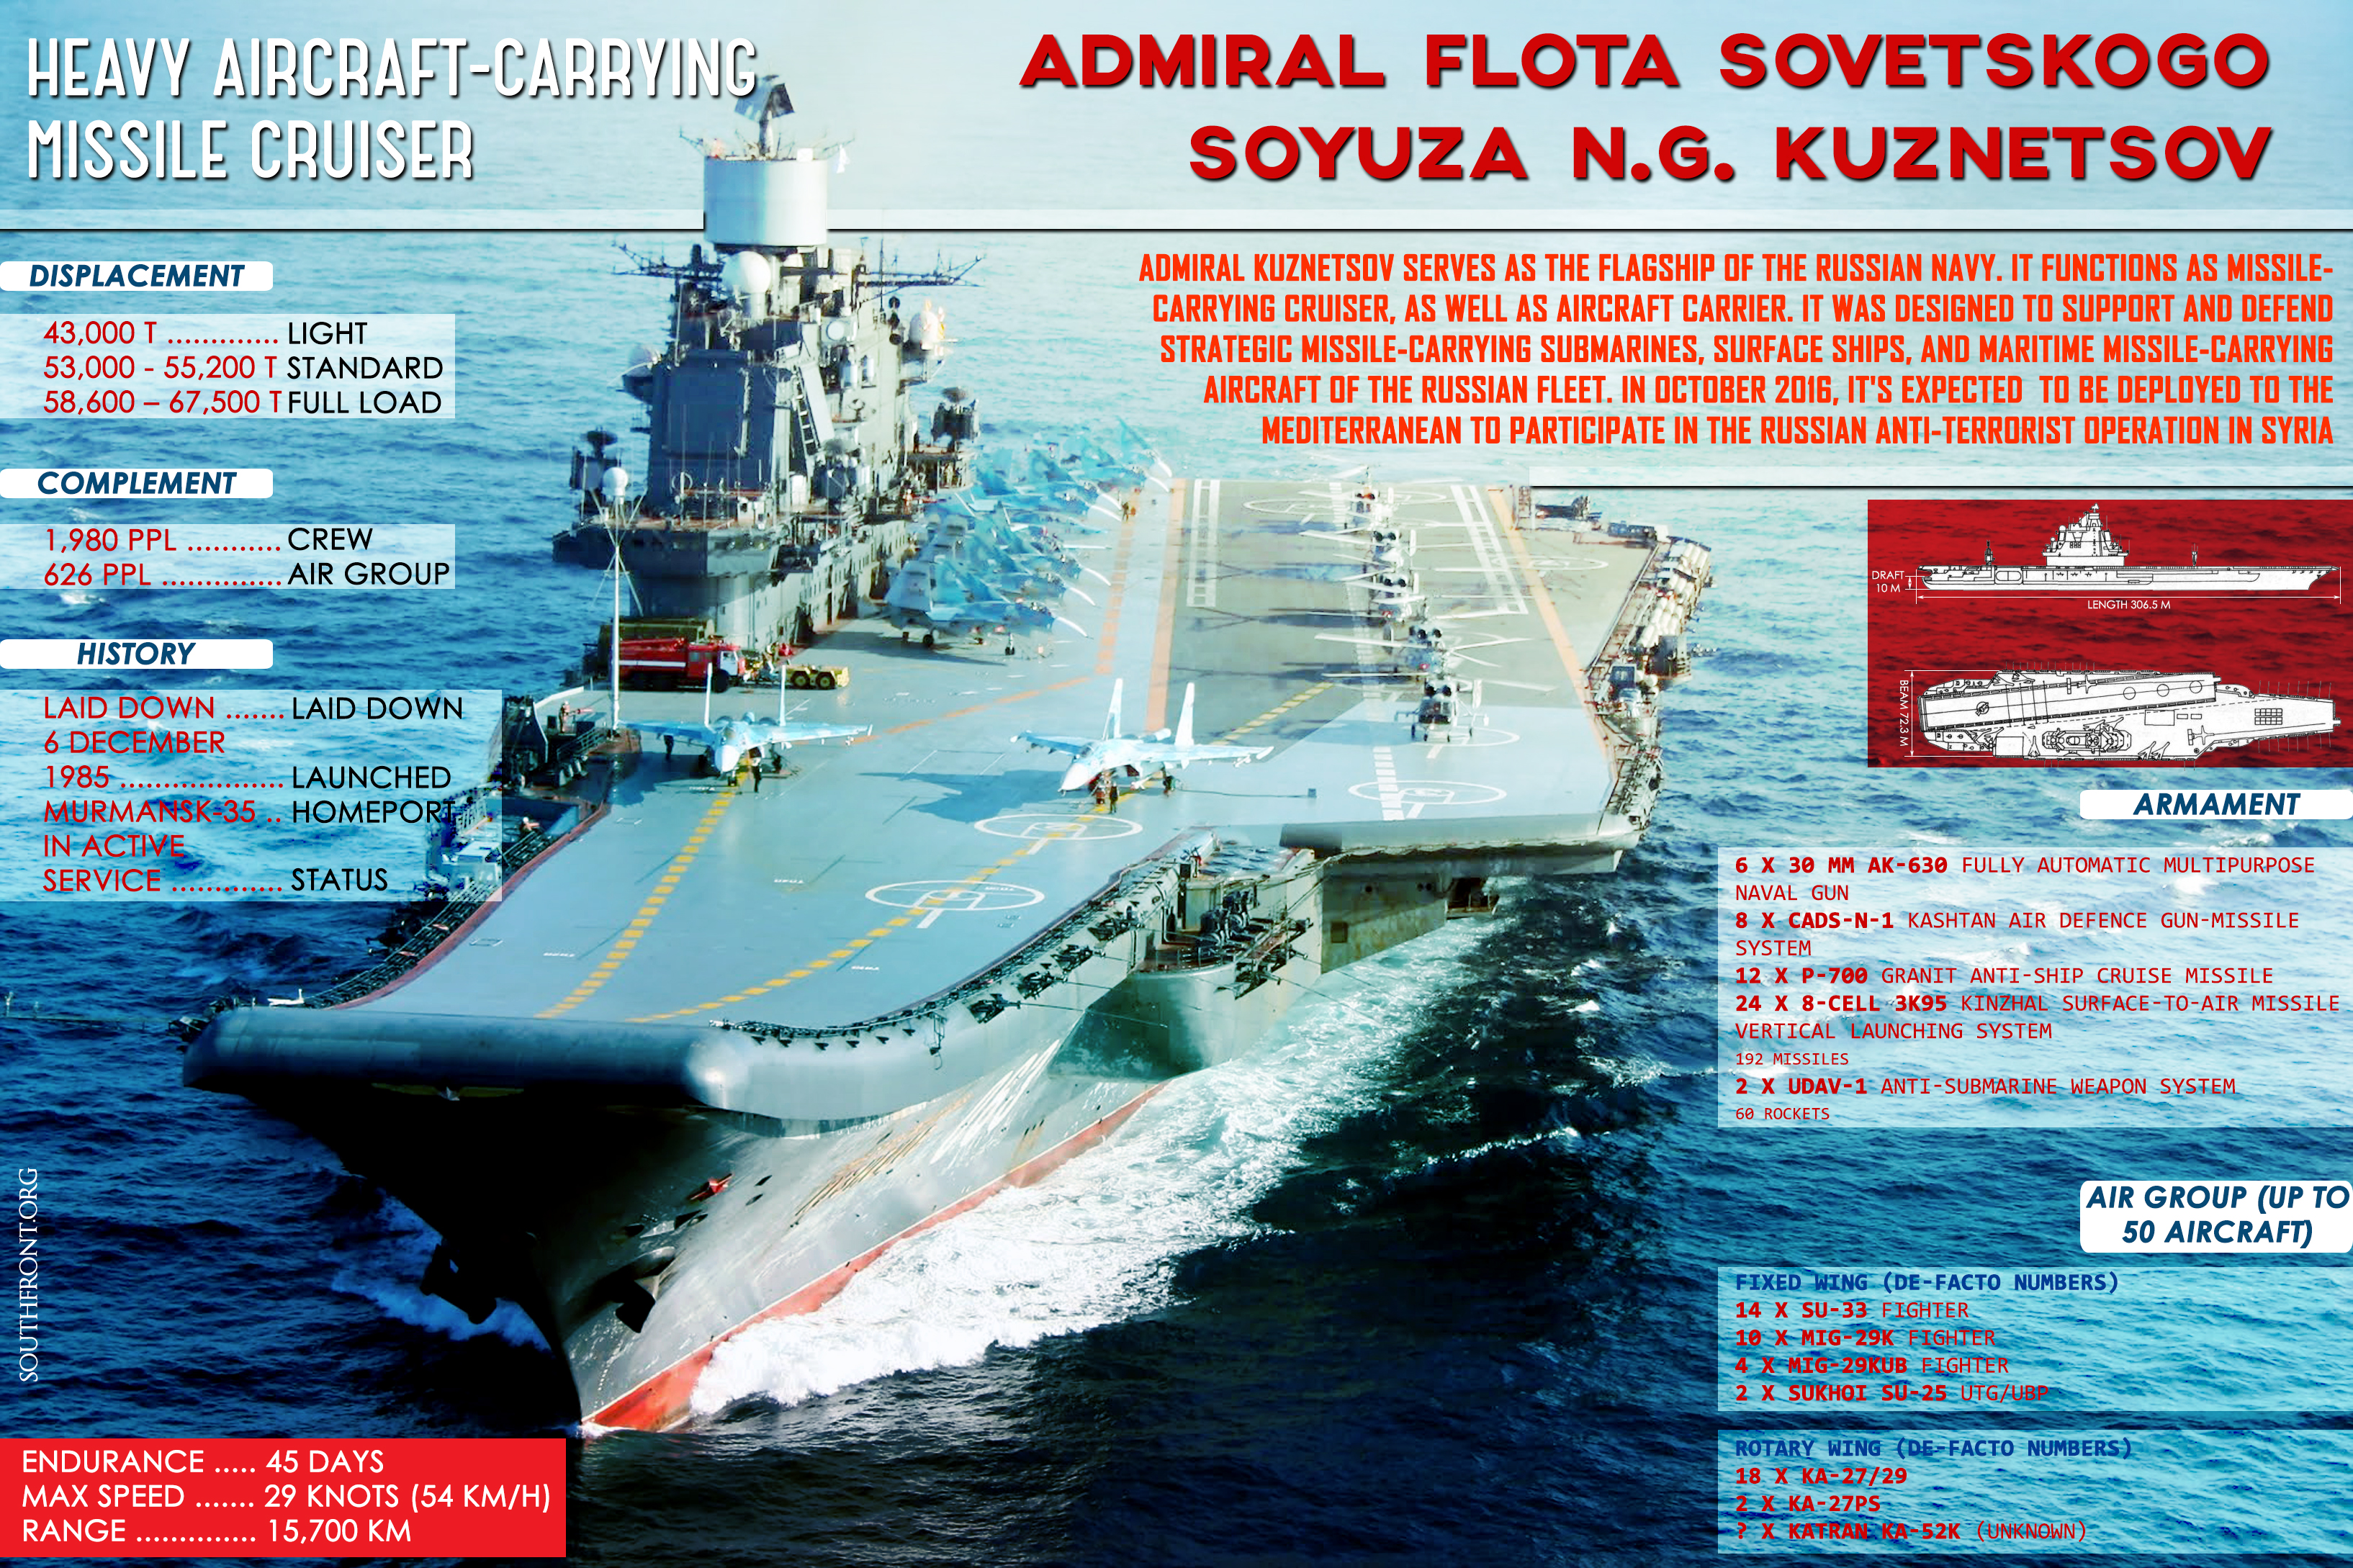 Russia's Heavy Aircraft-Carrying Missile Cruiser 'Admiral Kuznetsov' (Infographics)